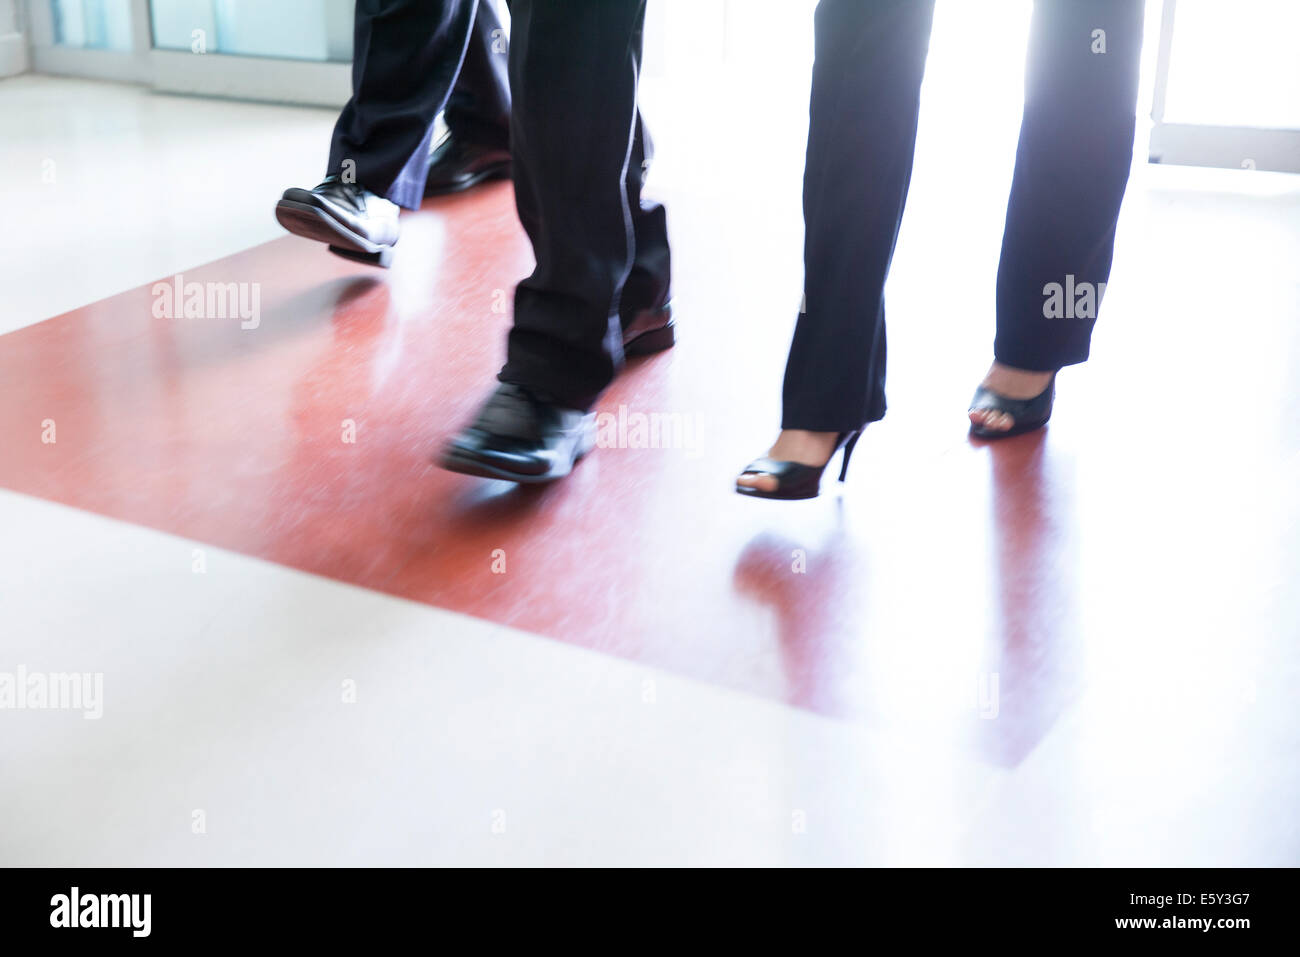 Business professionals entering building - Stock Image